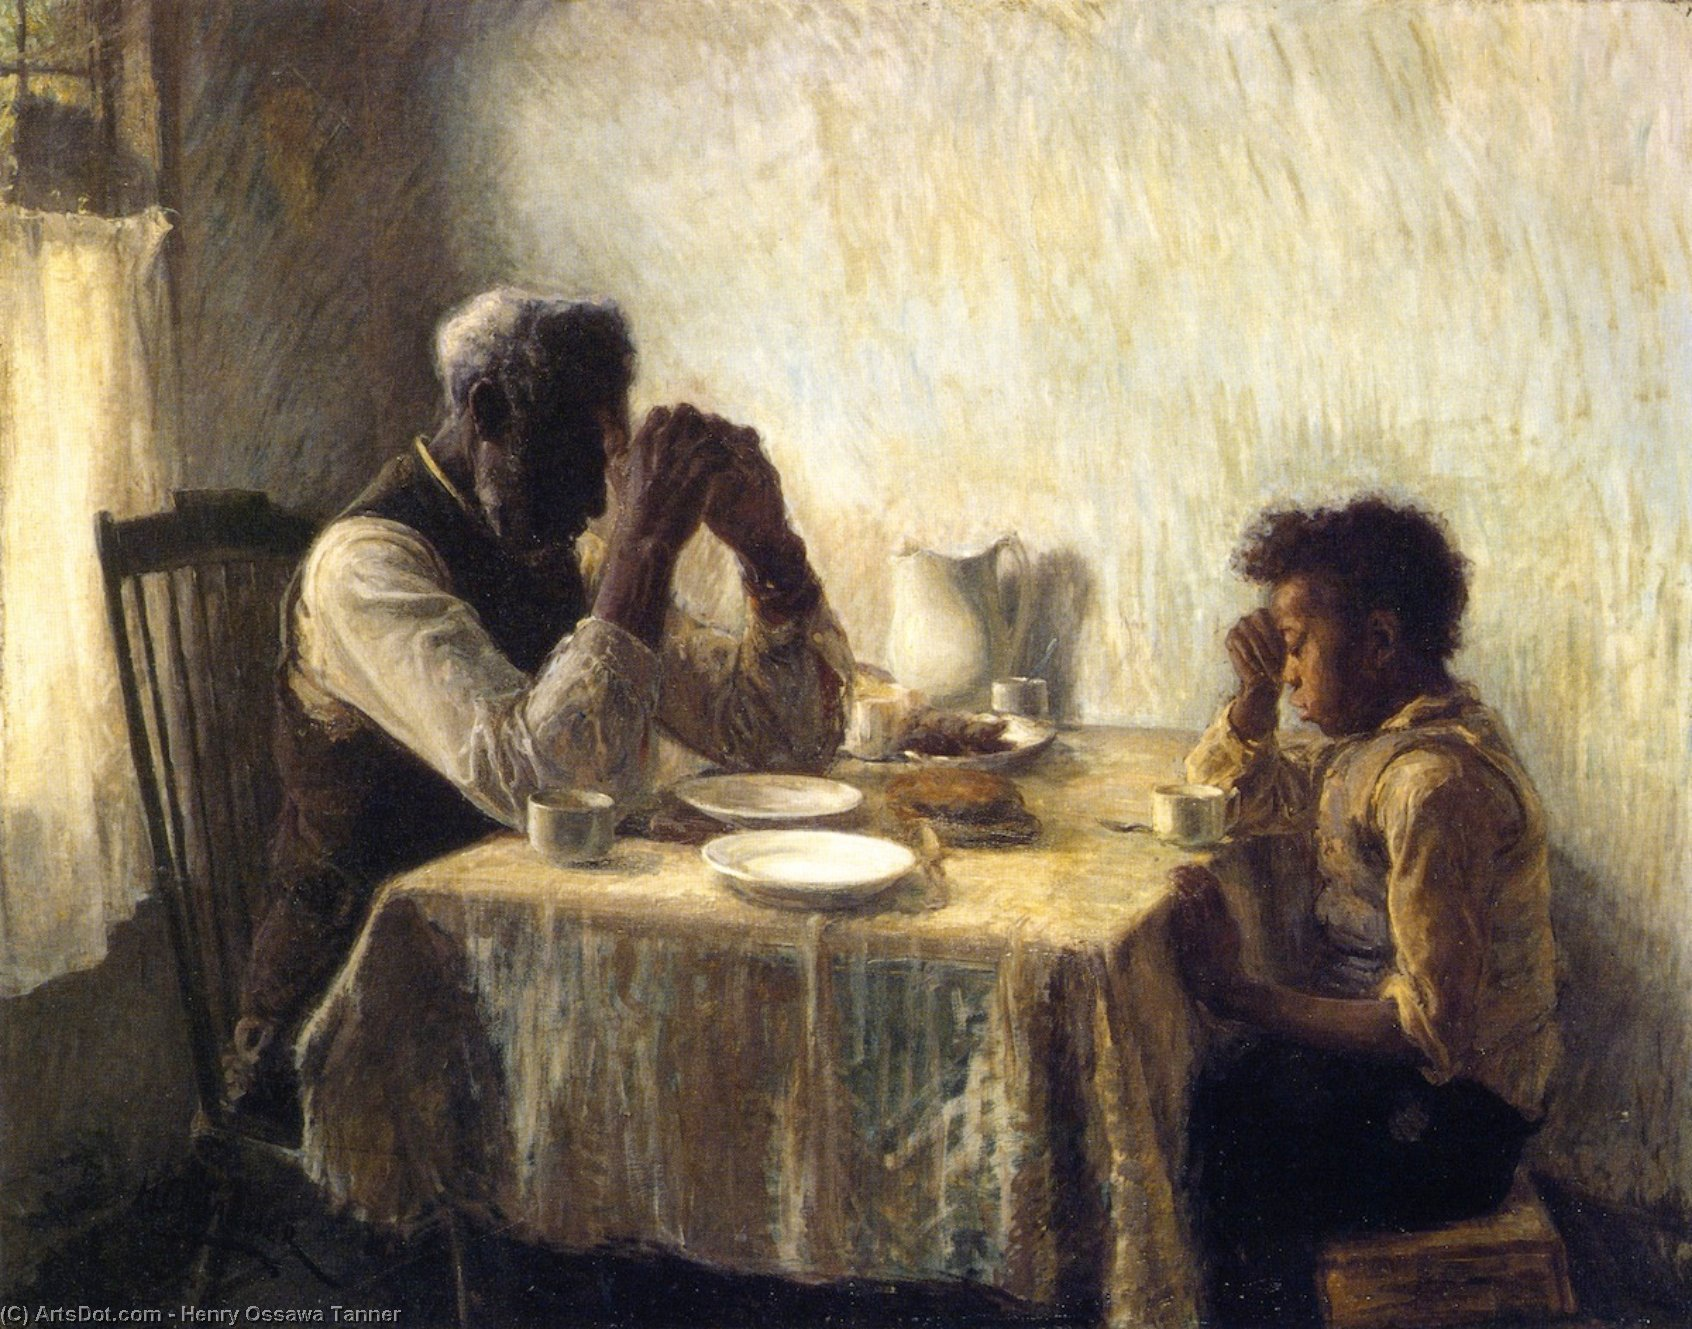 Wikioo.org - The Encyclopedia of Fine Arts - Painting, Artwork by Henry Ossawa Tanner - The Thankful Poor